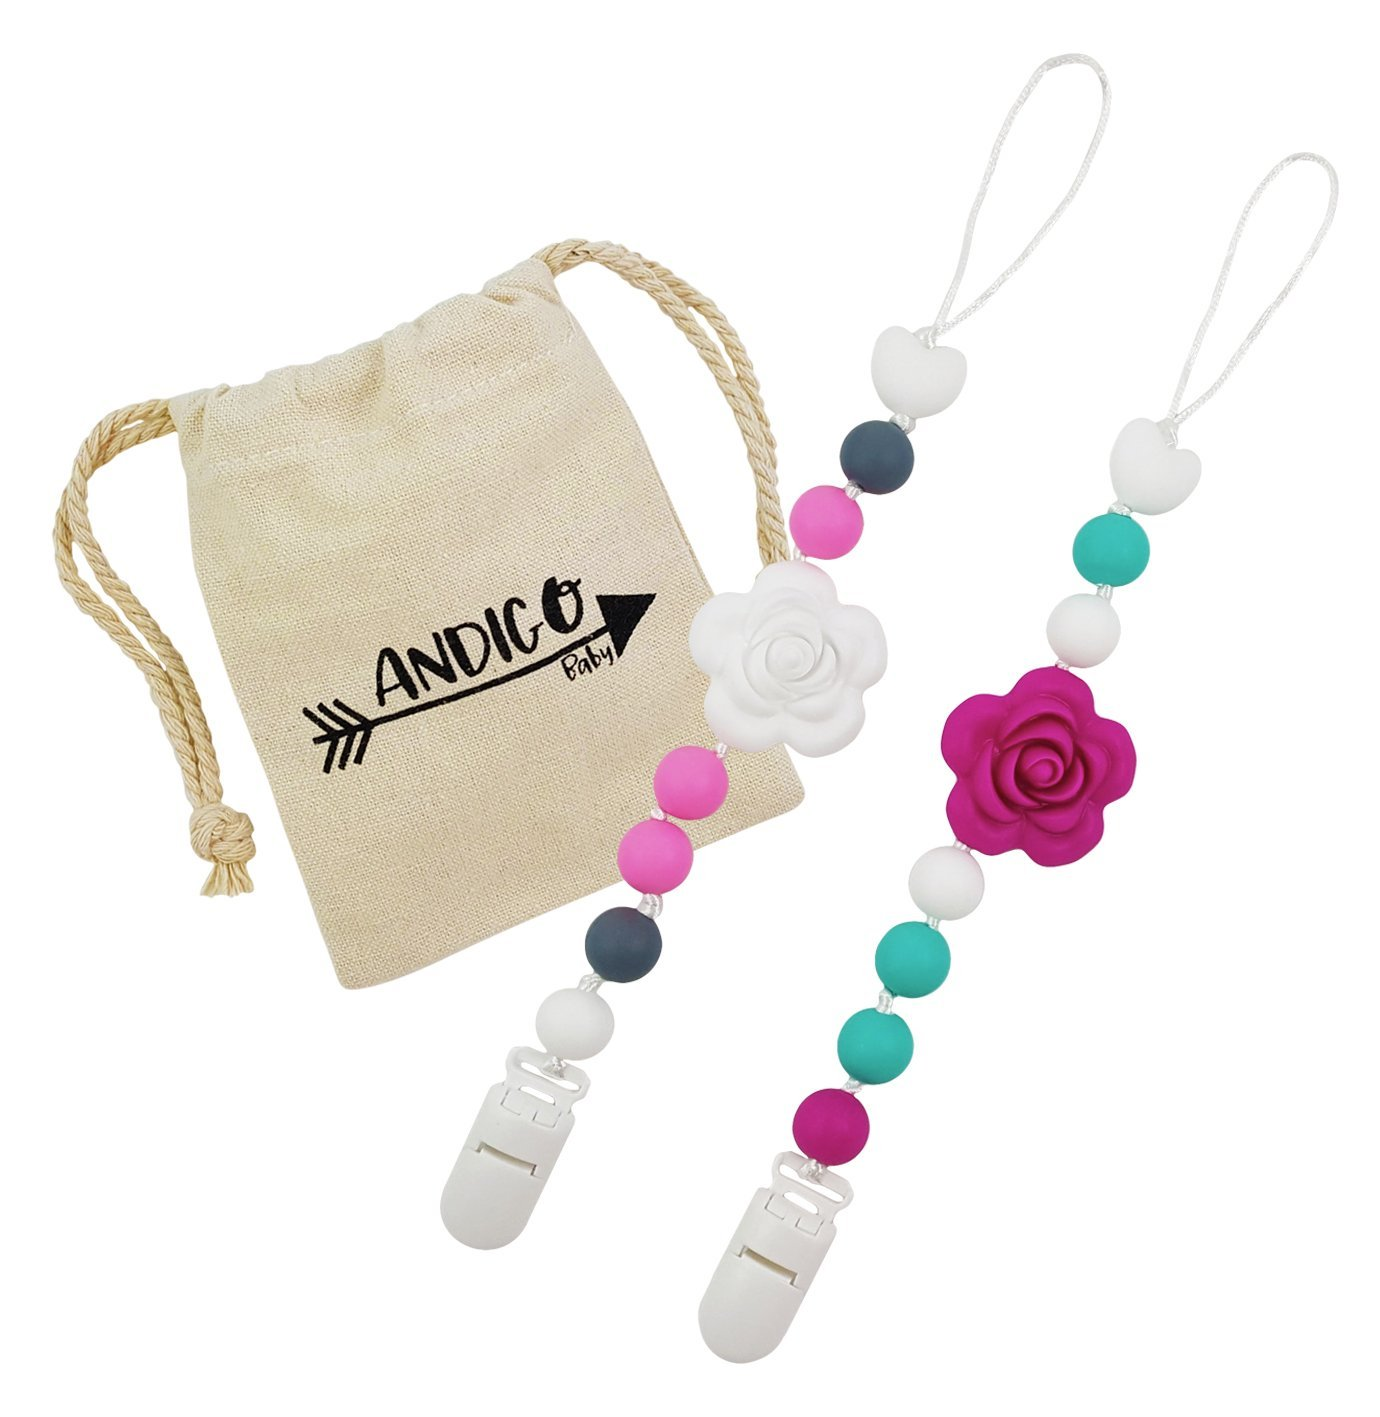 Pacifier Clip Holder - 2 in 1 - with Silicone Teething Beads, for Girls, Boys, Unisex, Set of Two, Compatible with MAM, Soothie, NUK, Tommee Tippee and Other Pacifiers - Flower - Fuchsia AND.IGO